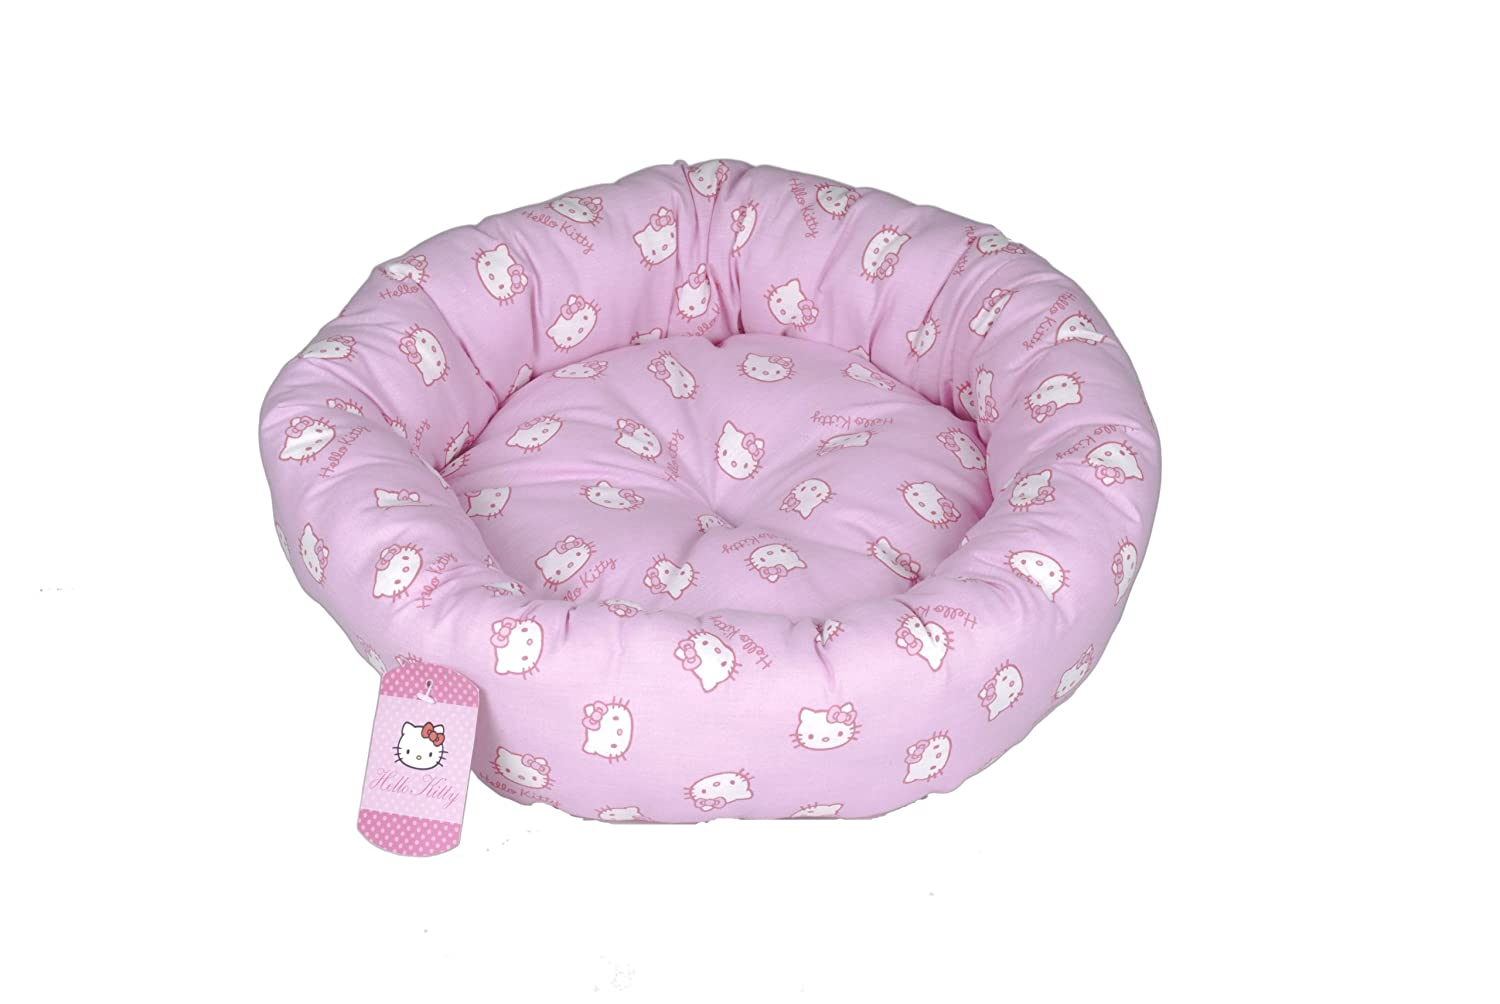 P3Sync Hello Kitty Pink Faces Oval Pet Bed [Kitchen] at Sears.com